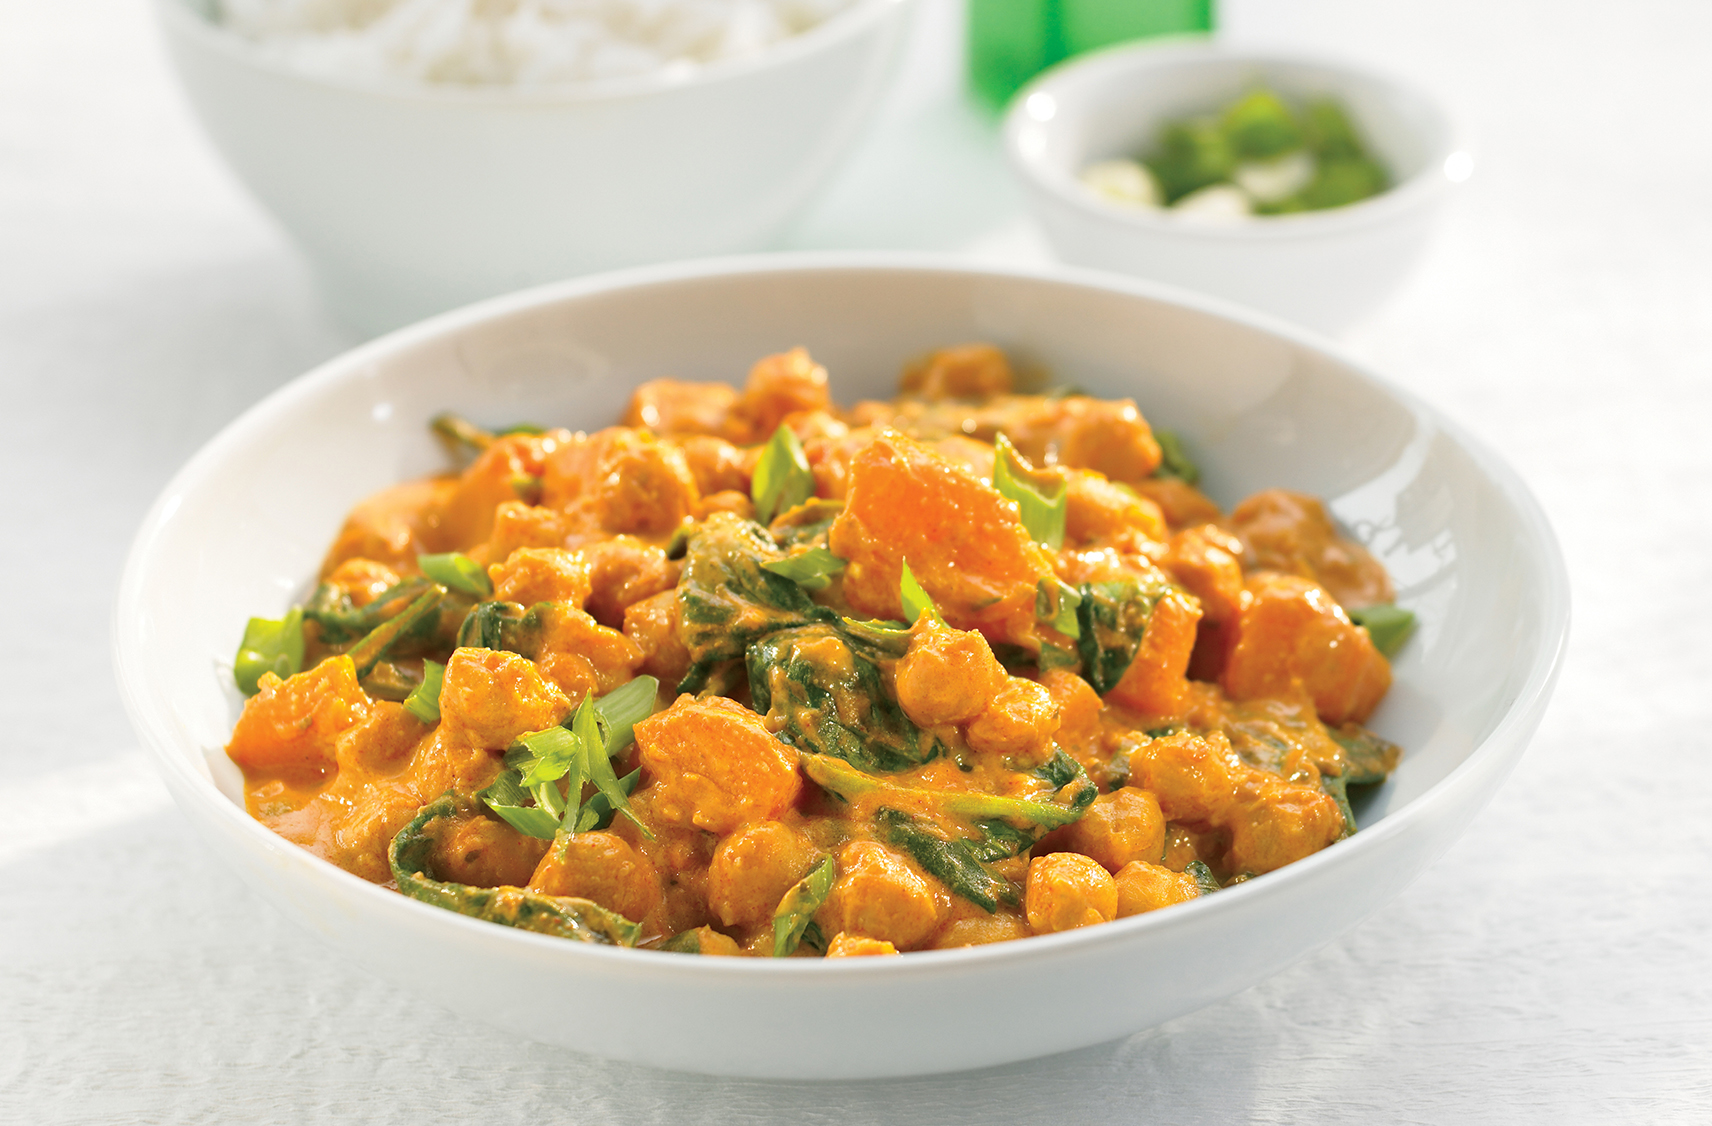 A bowl of curried chick peas & squash korma with spinach & green onions